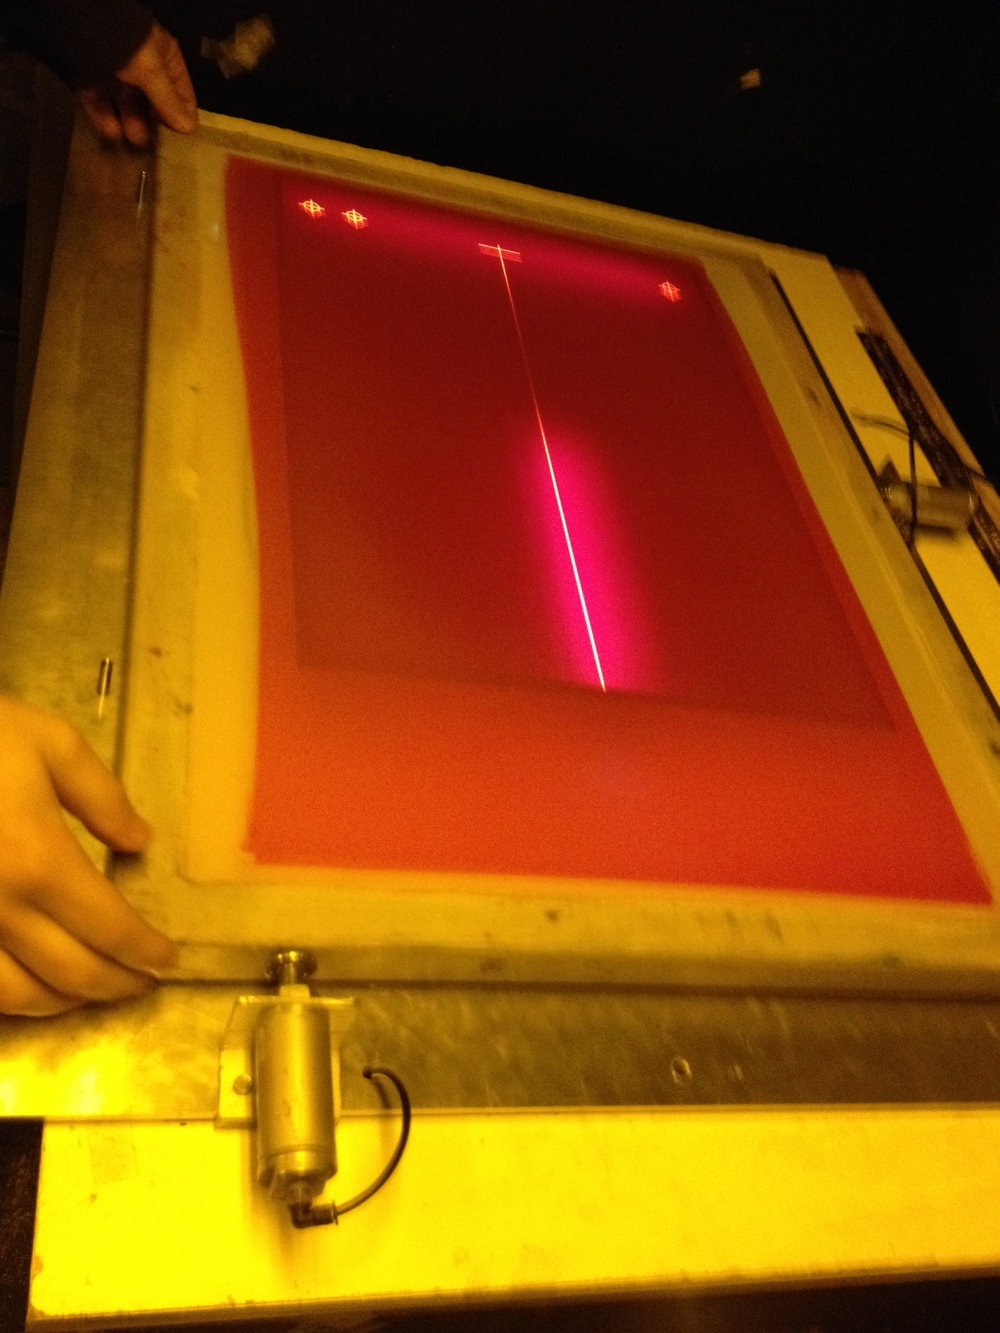 New laser registration system in action!